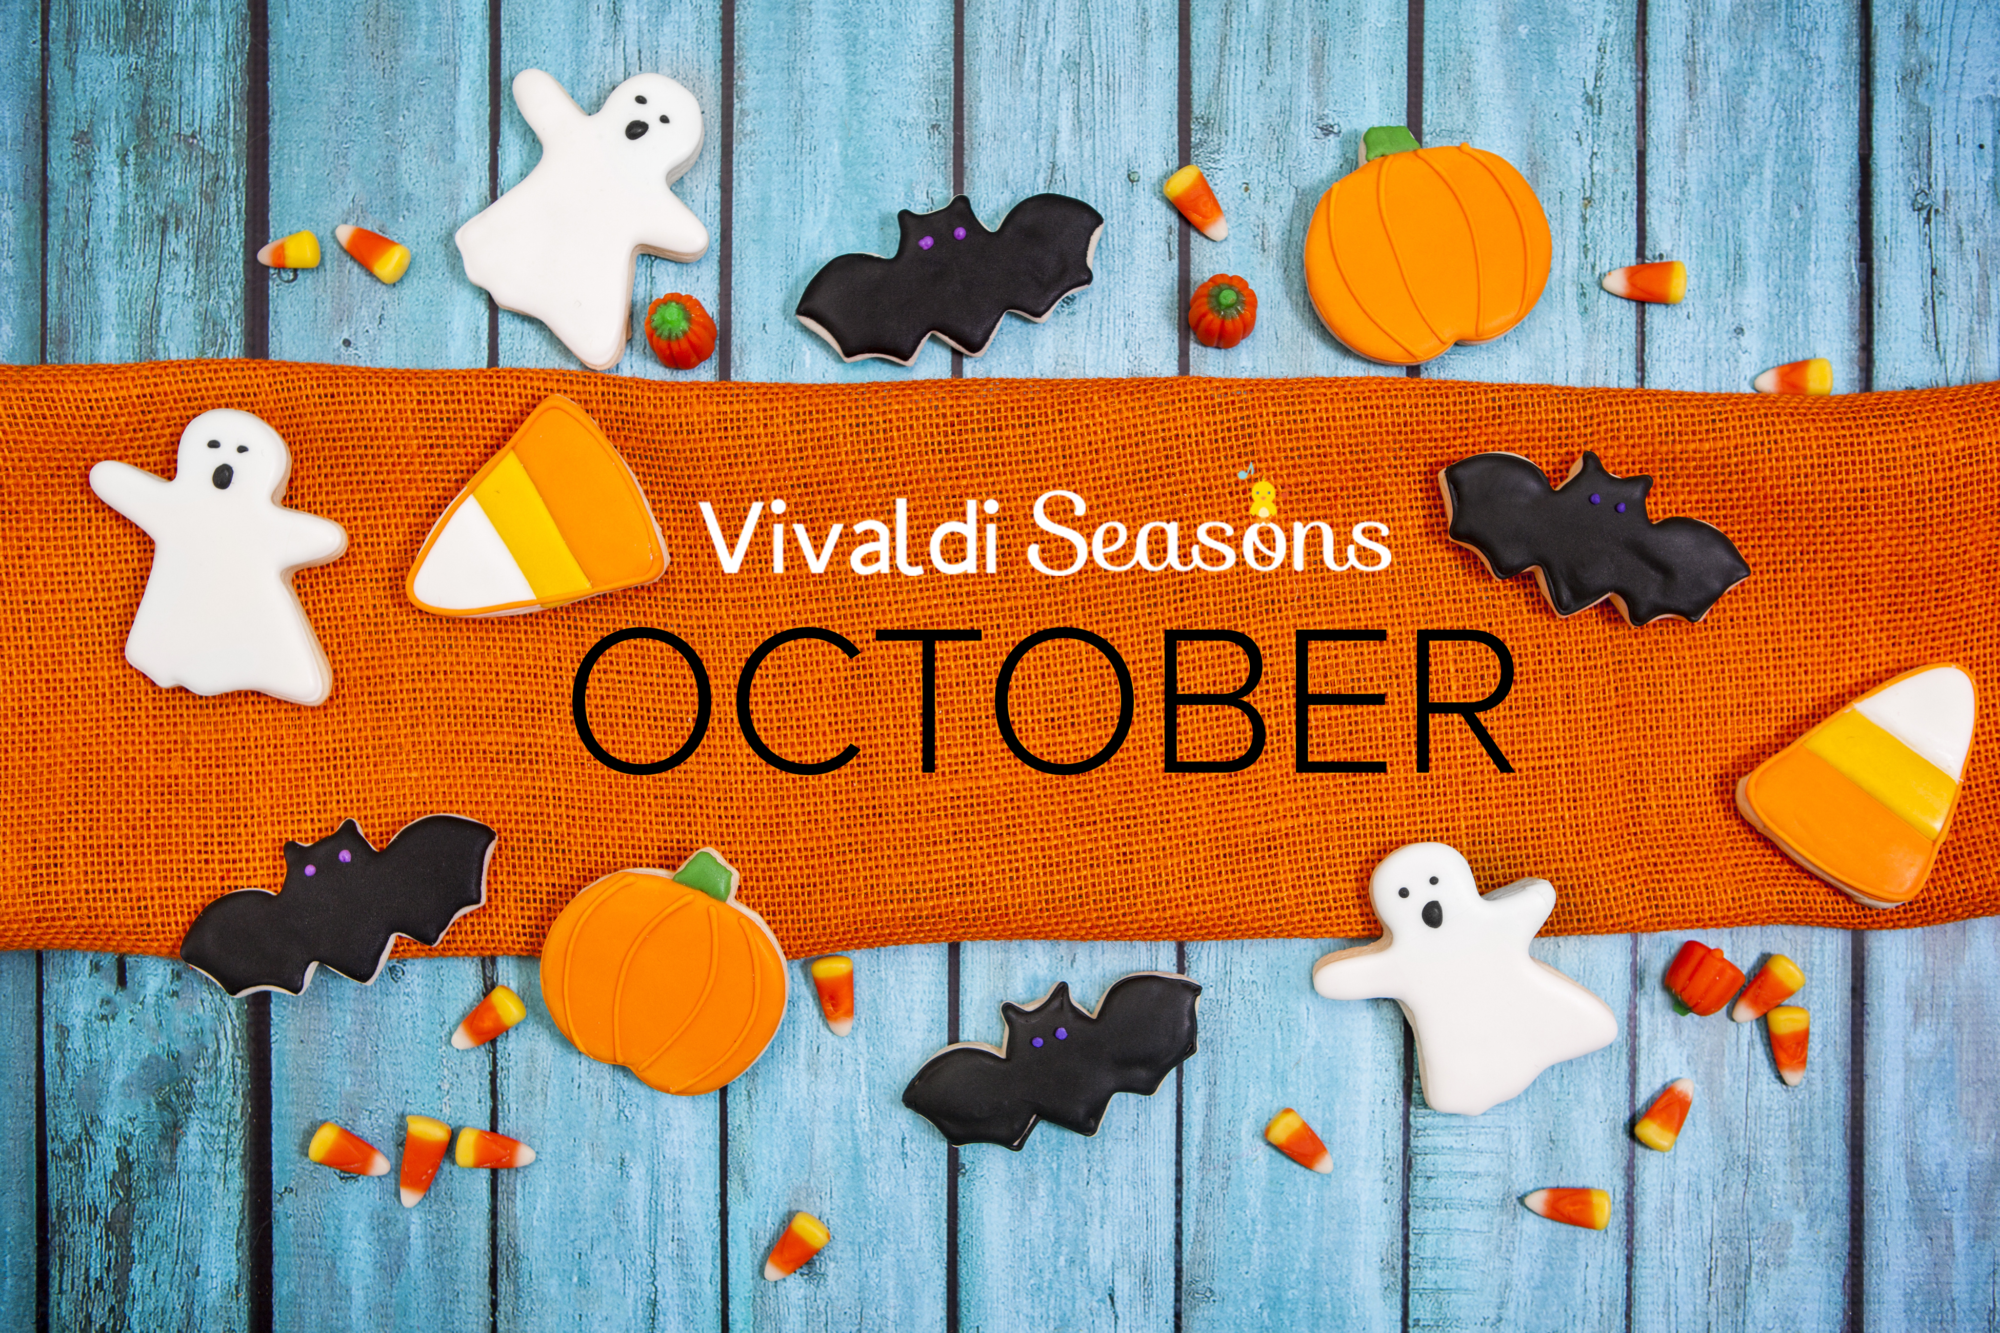 Vivaldi Seasons - October Theme